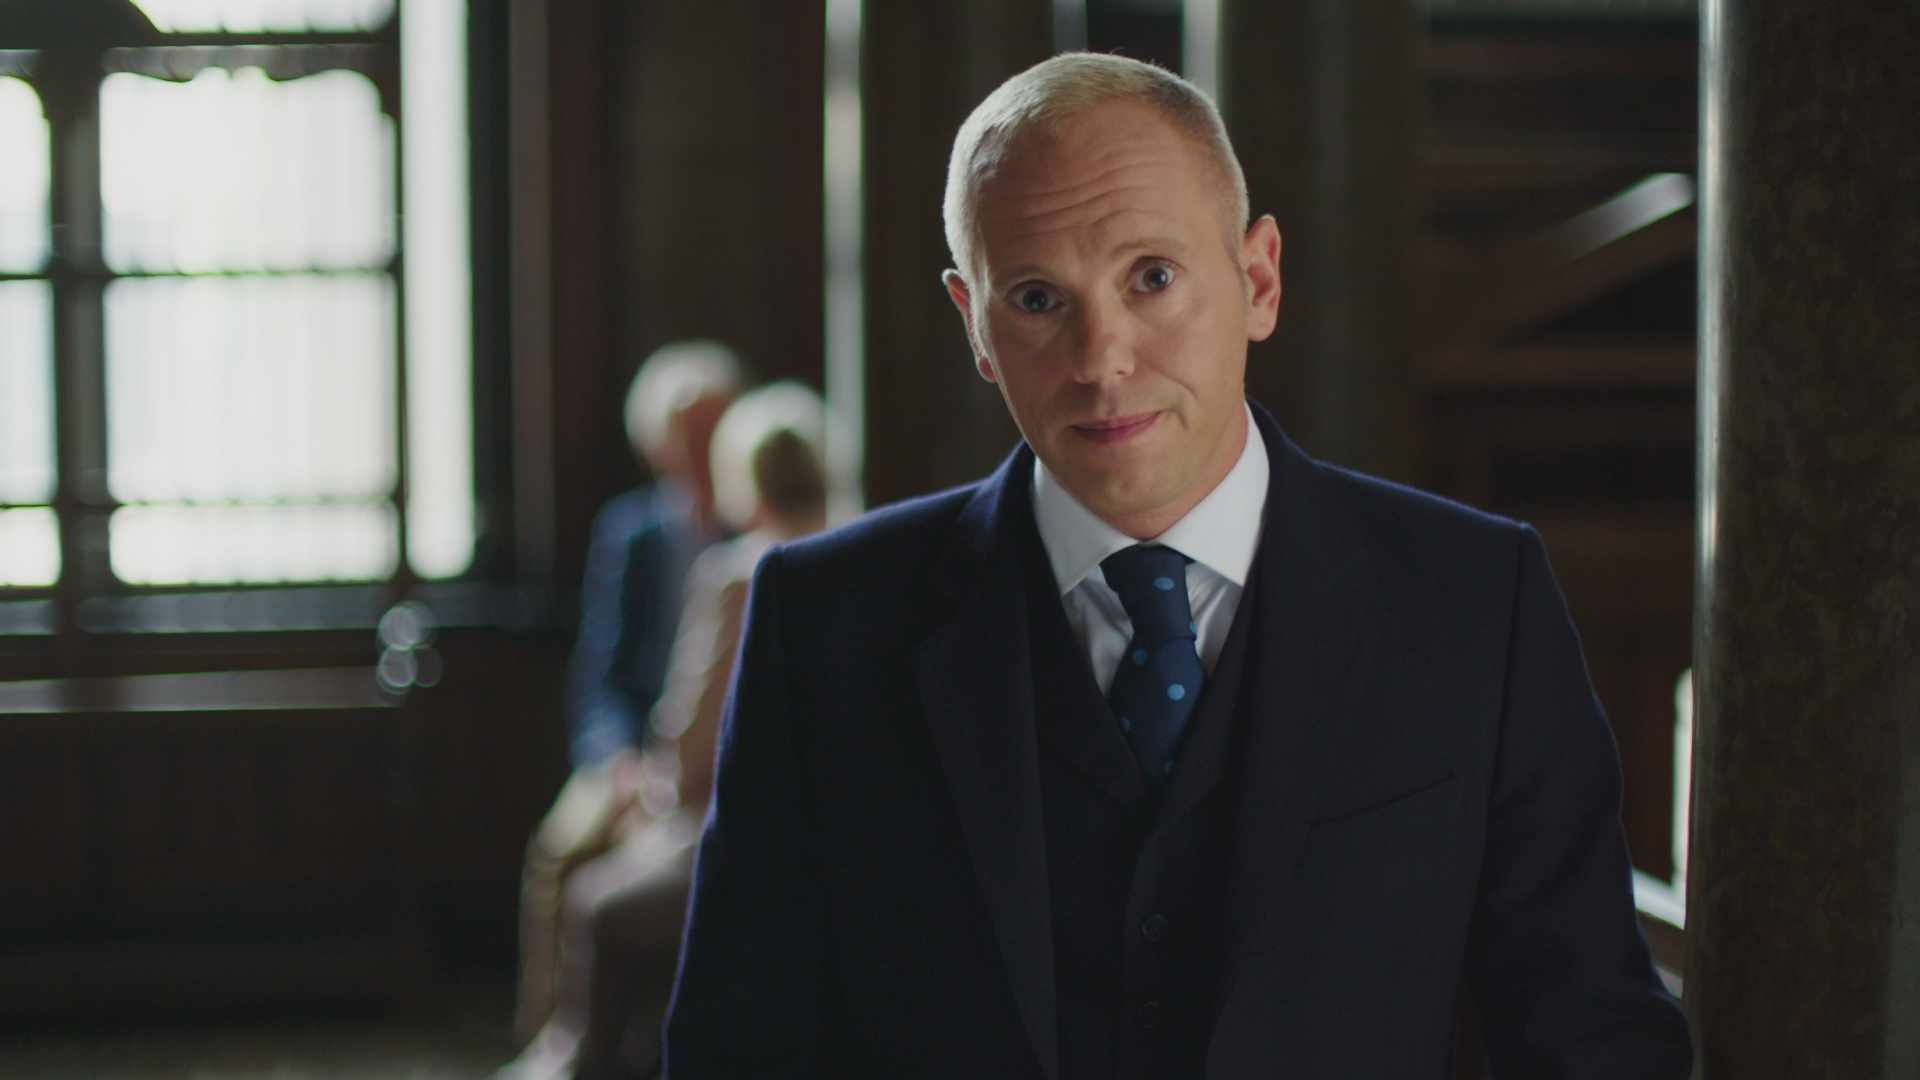 Judge Rinder in Crown Court